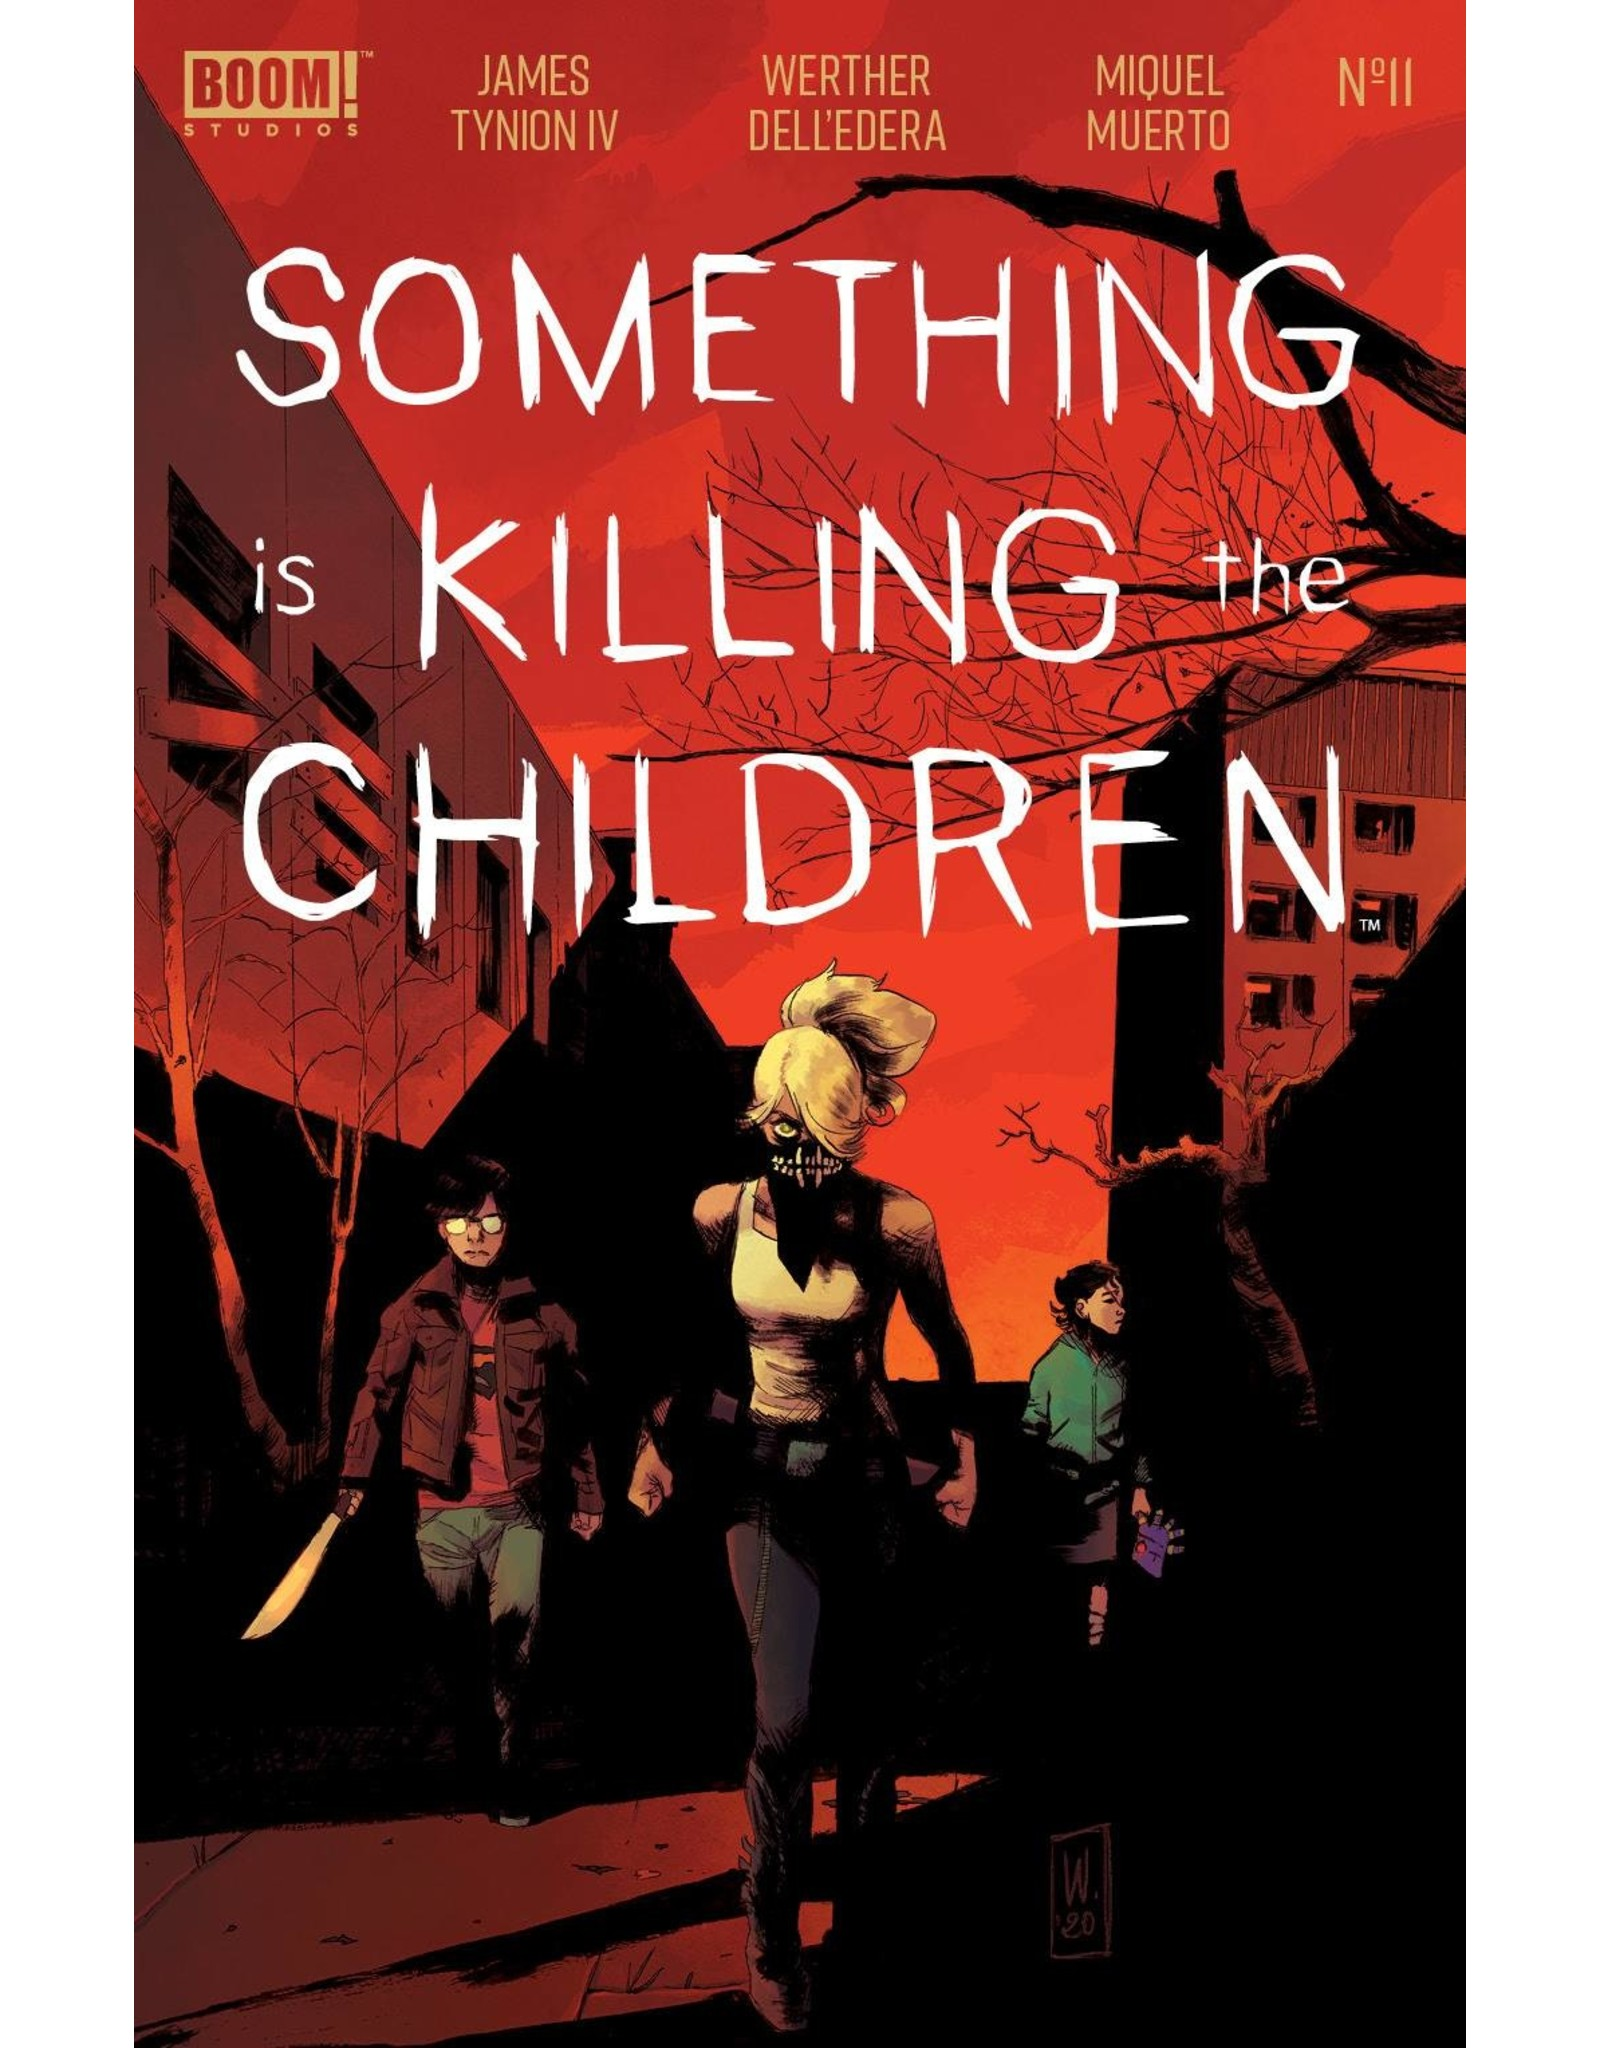 BOOM! STUDIOS SOMETHING IS KILLING CHILDREN #11 MAIN